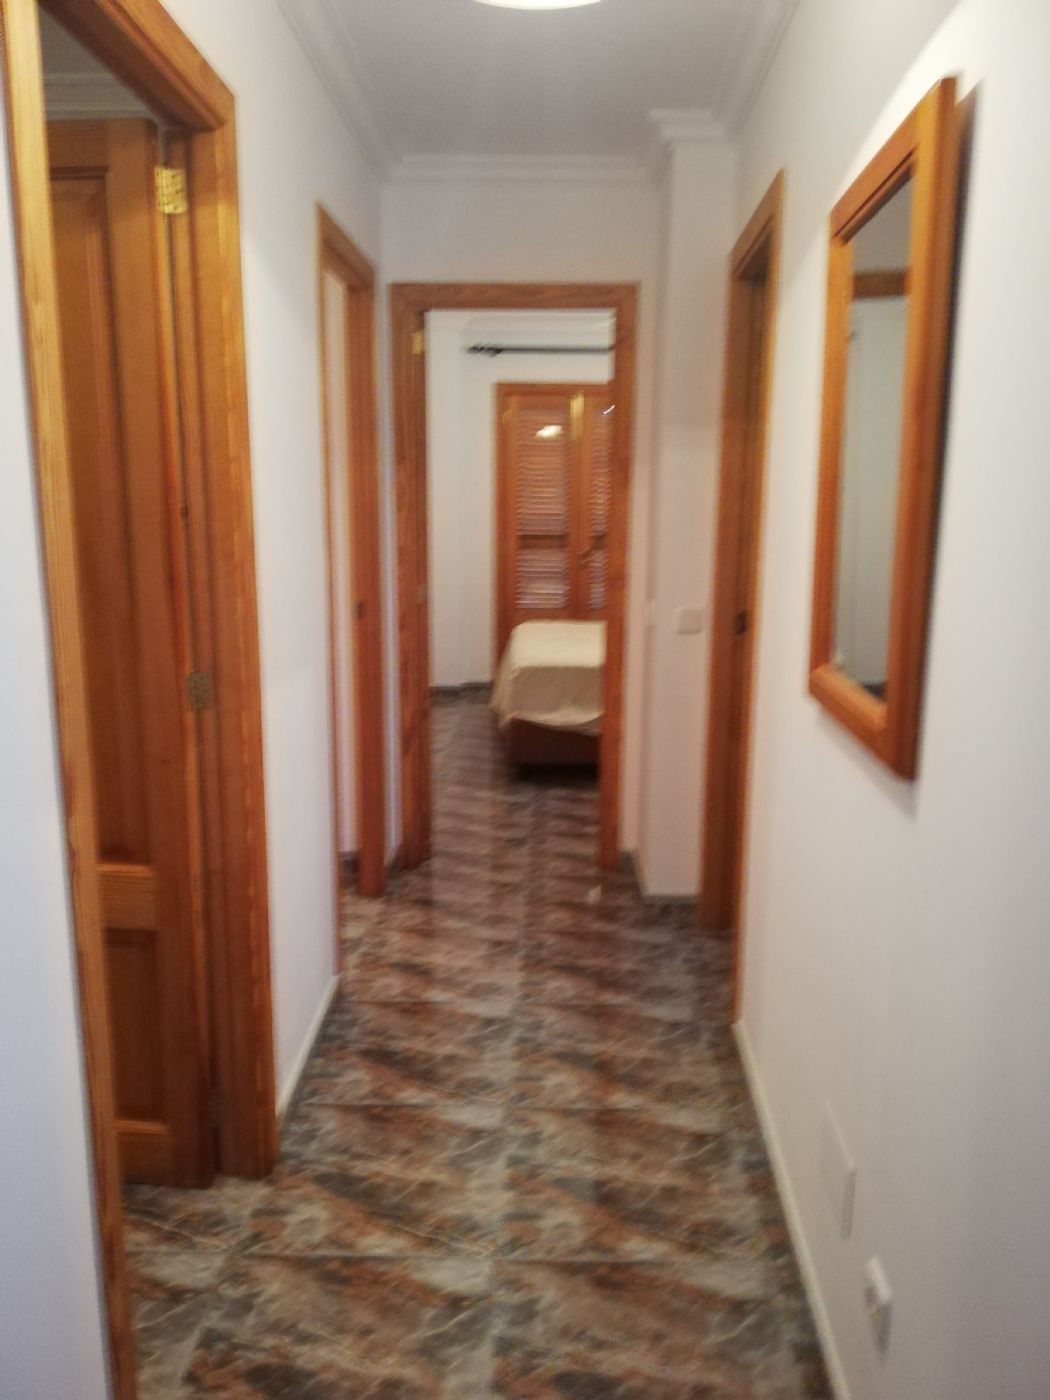 Location Appartement à Plaza mare de deu, 16. Piso en costitx